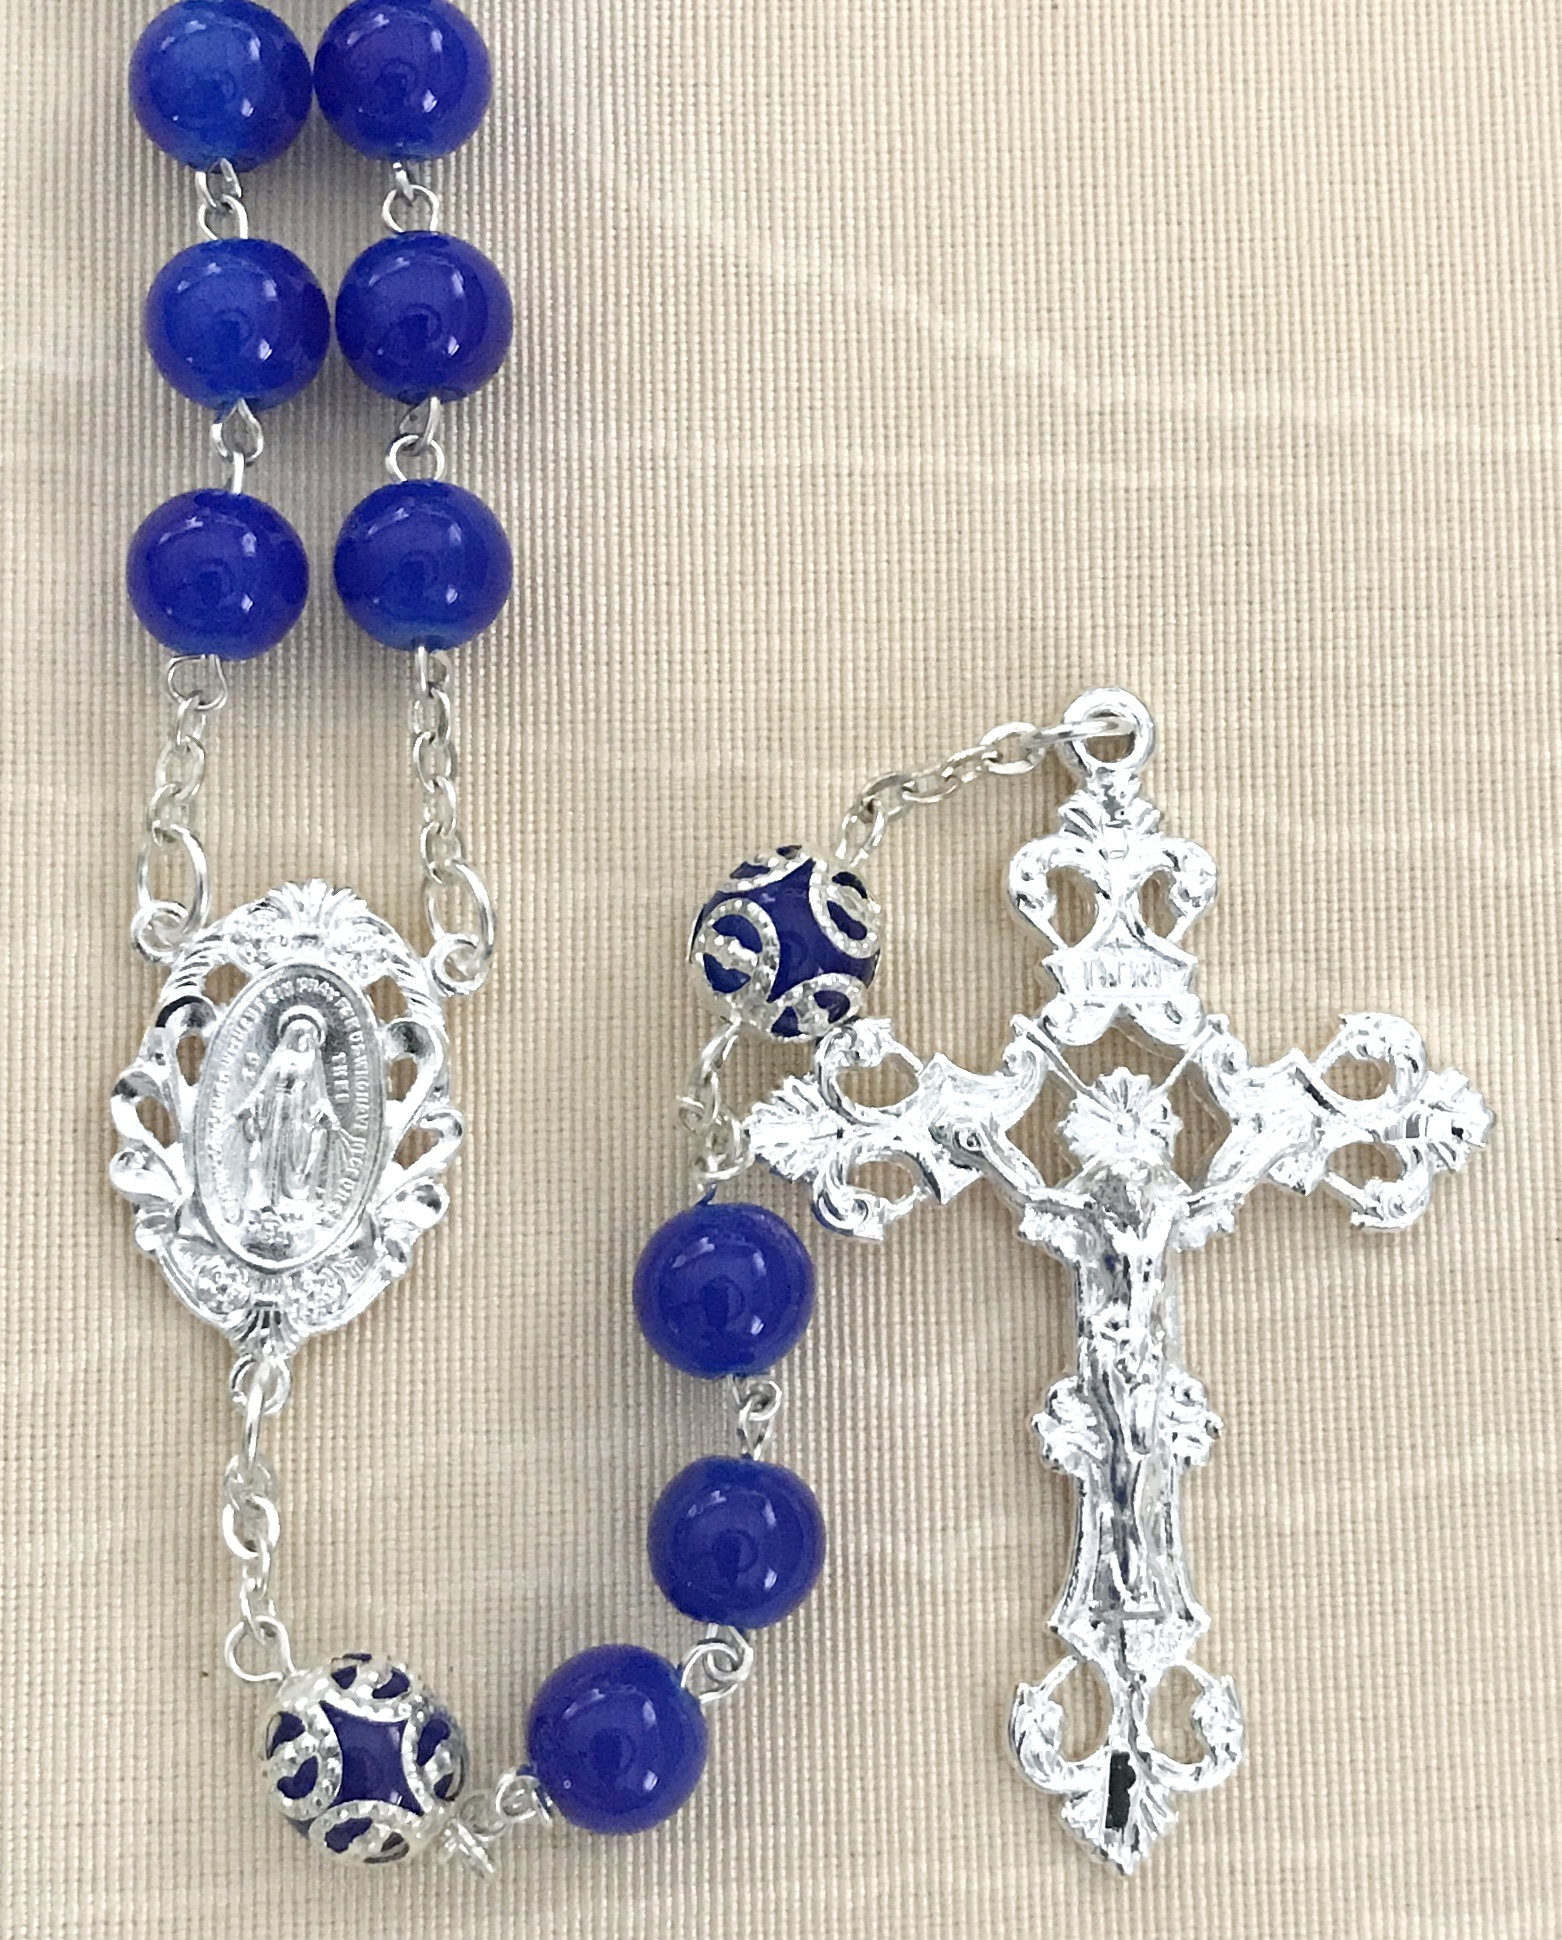 8mm DARK SAPPHIRE GLASS ROSARY WITH CAPPED OUR FATHER BEADS AND STERLING SILVER PLATED CRUCIFIX AND CENTER GIFT BOXED